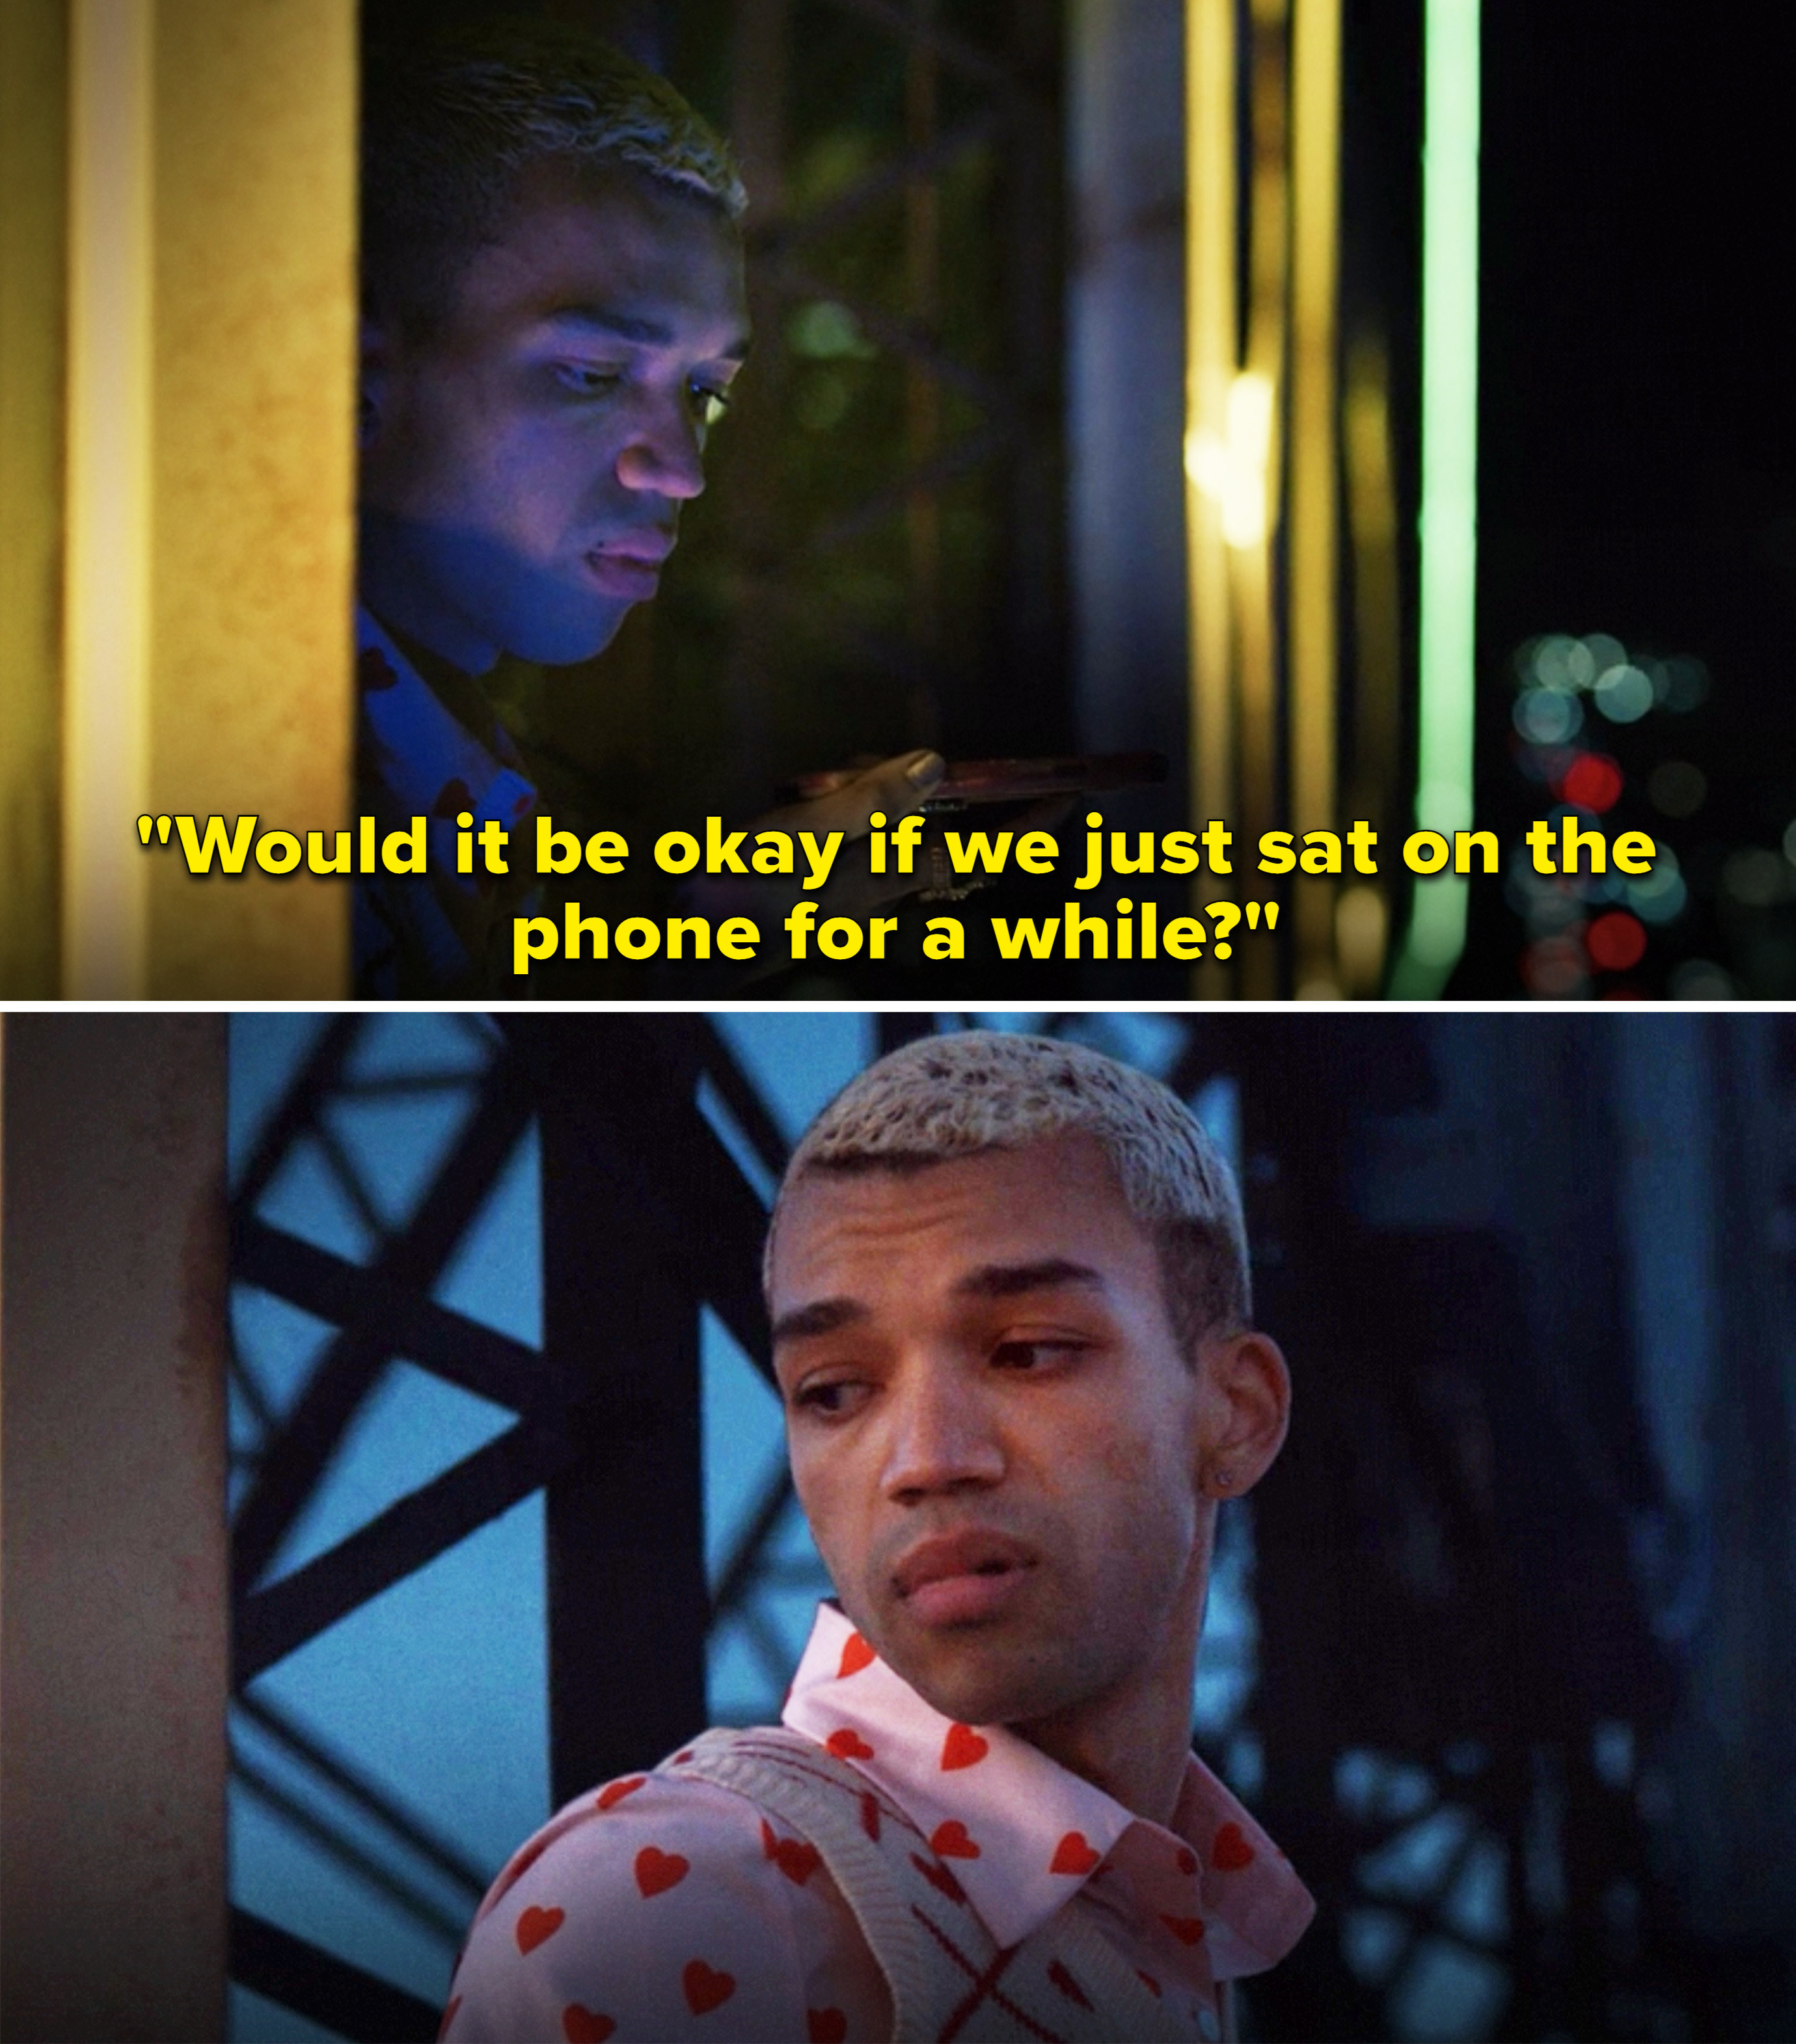 """Chester talking on the phone and saying, """"Would it be okay if we just sat on the phone for a while?"""""""